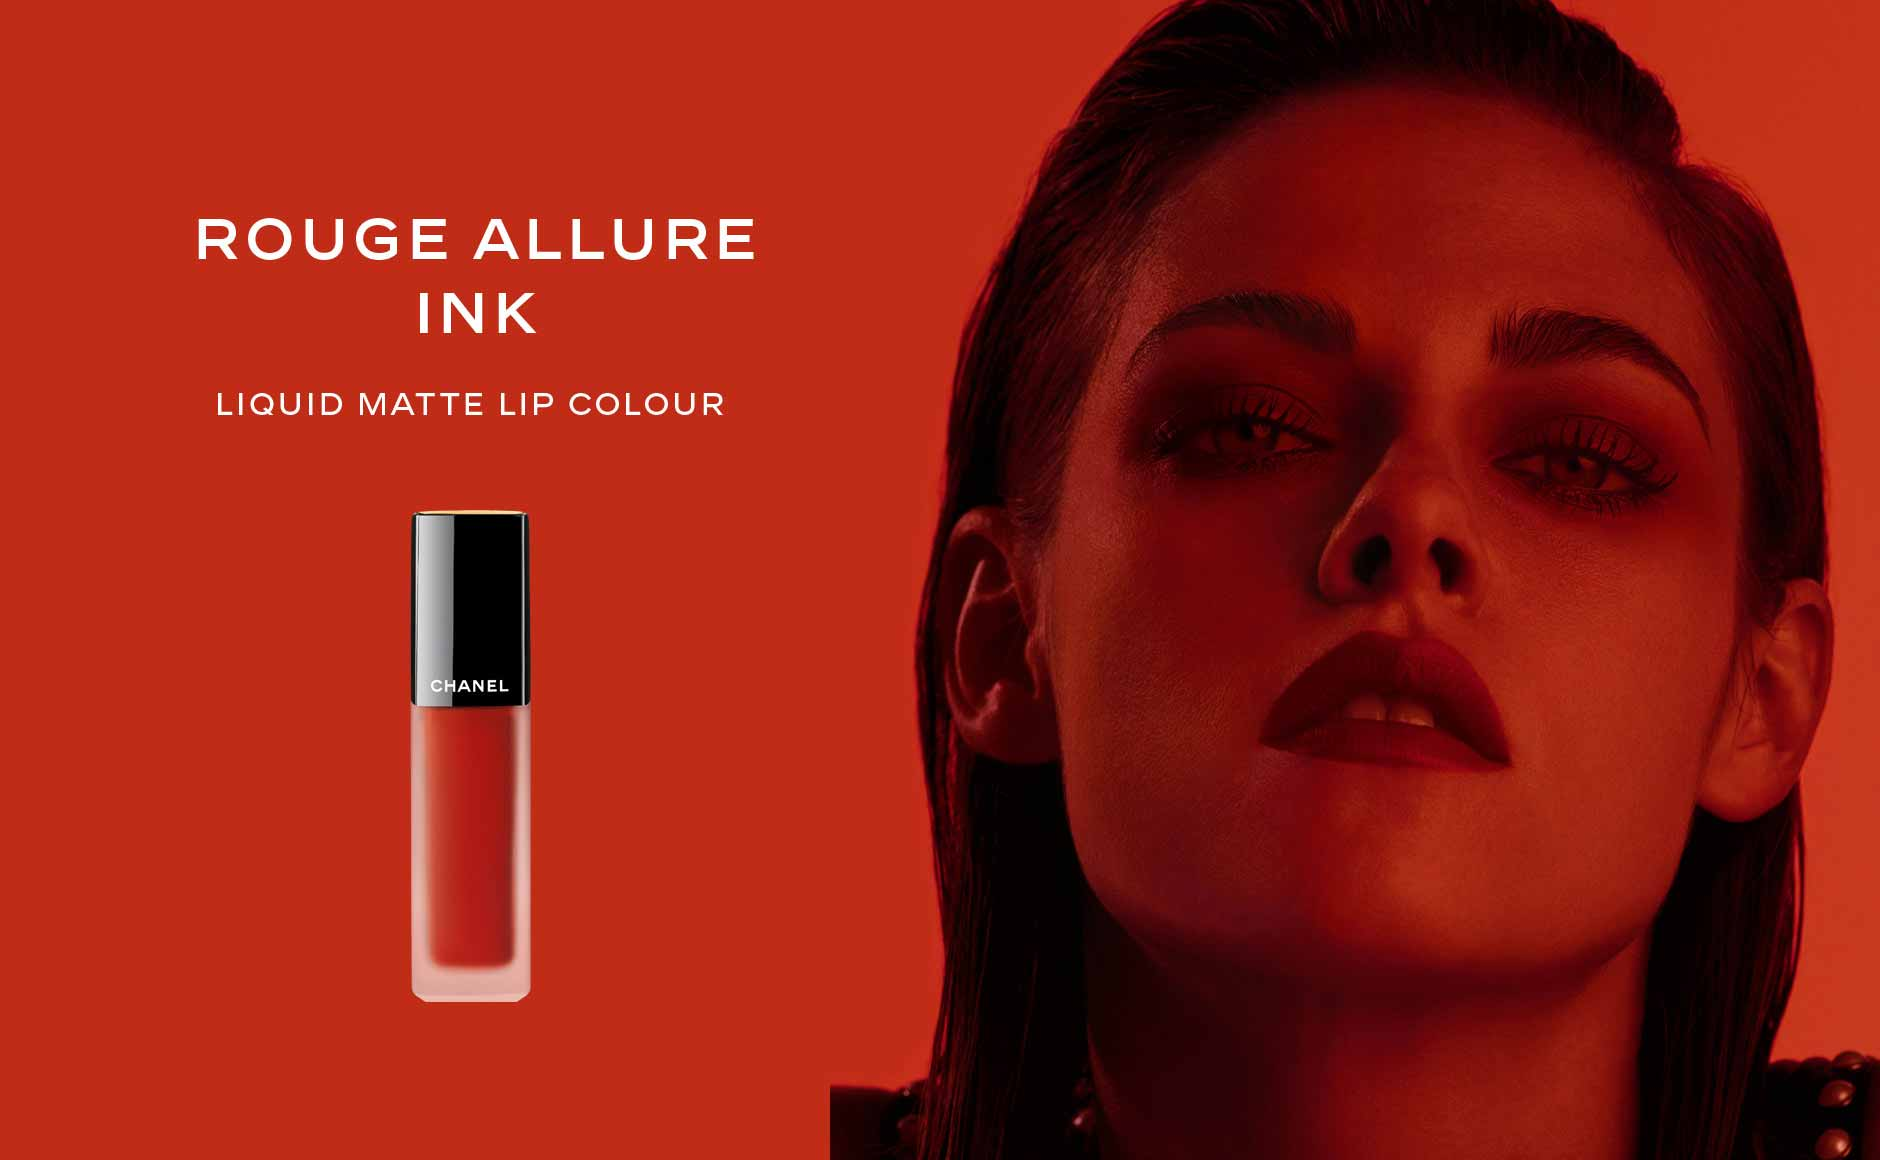 Rouge Allure Ink: Liquid Matte Lip Colour - Chanel